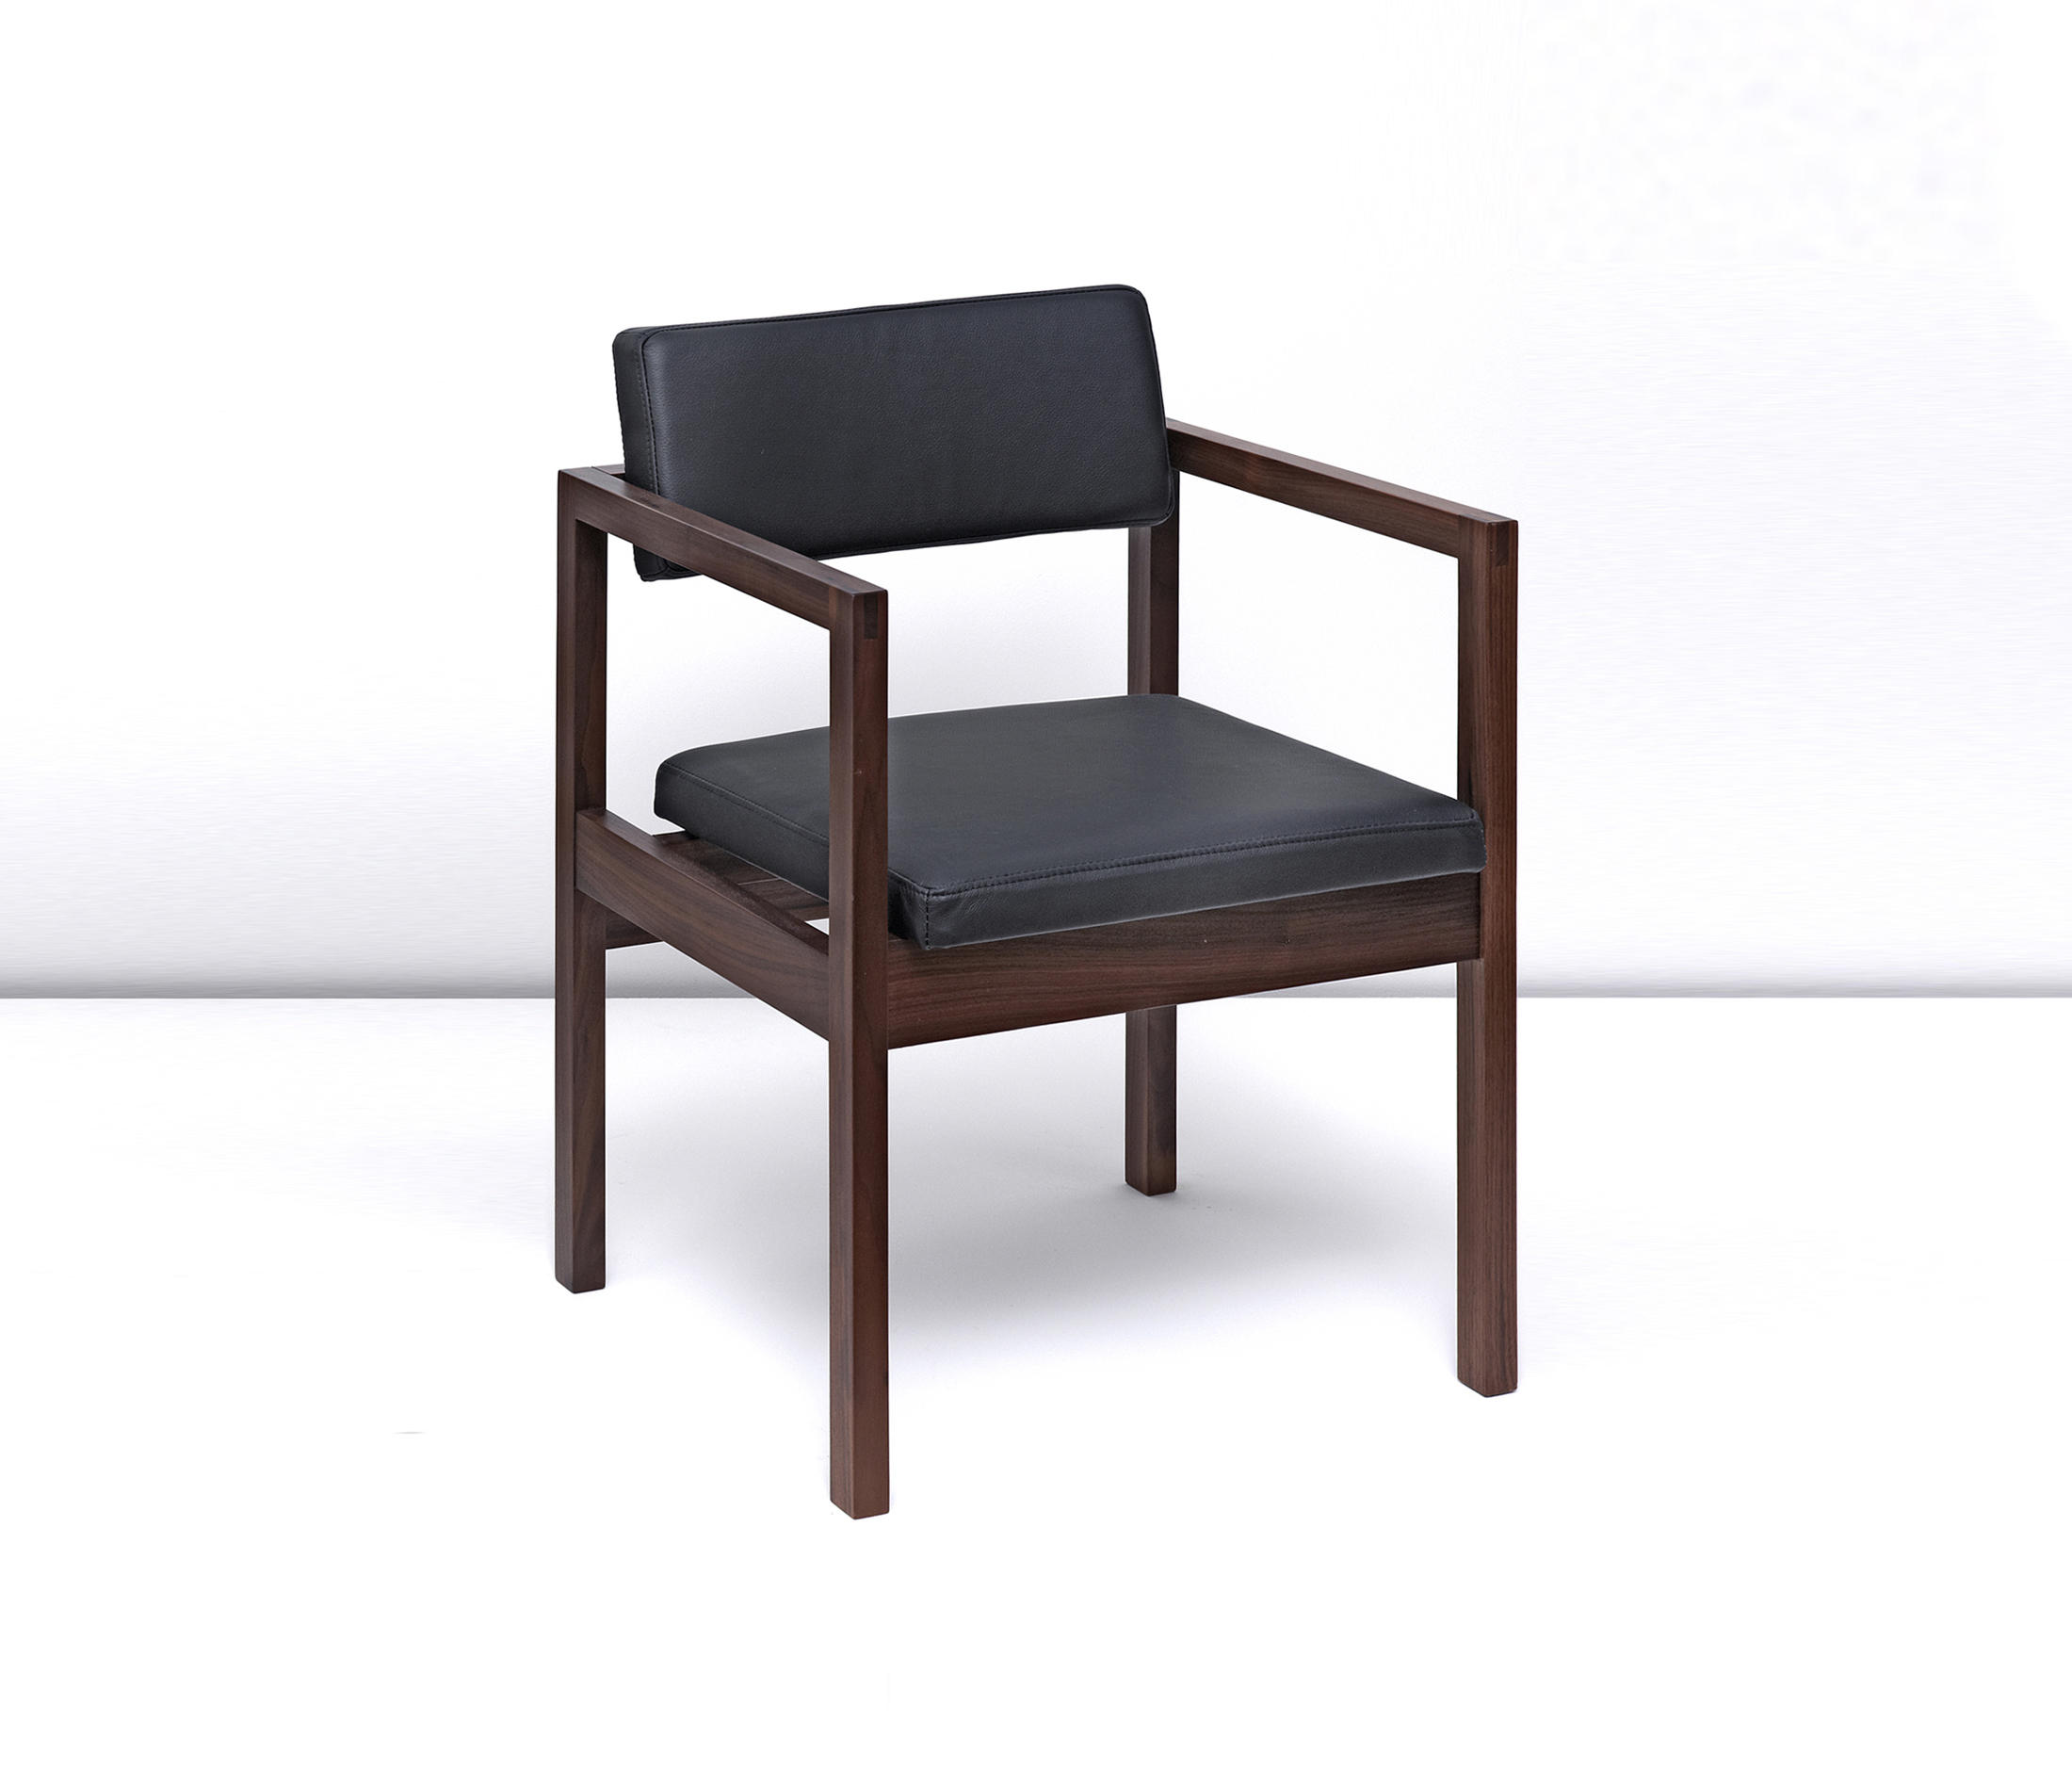 West Street Chair Chairs From Case Furniture Architonic